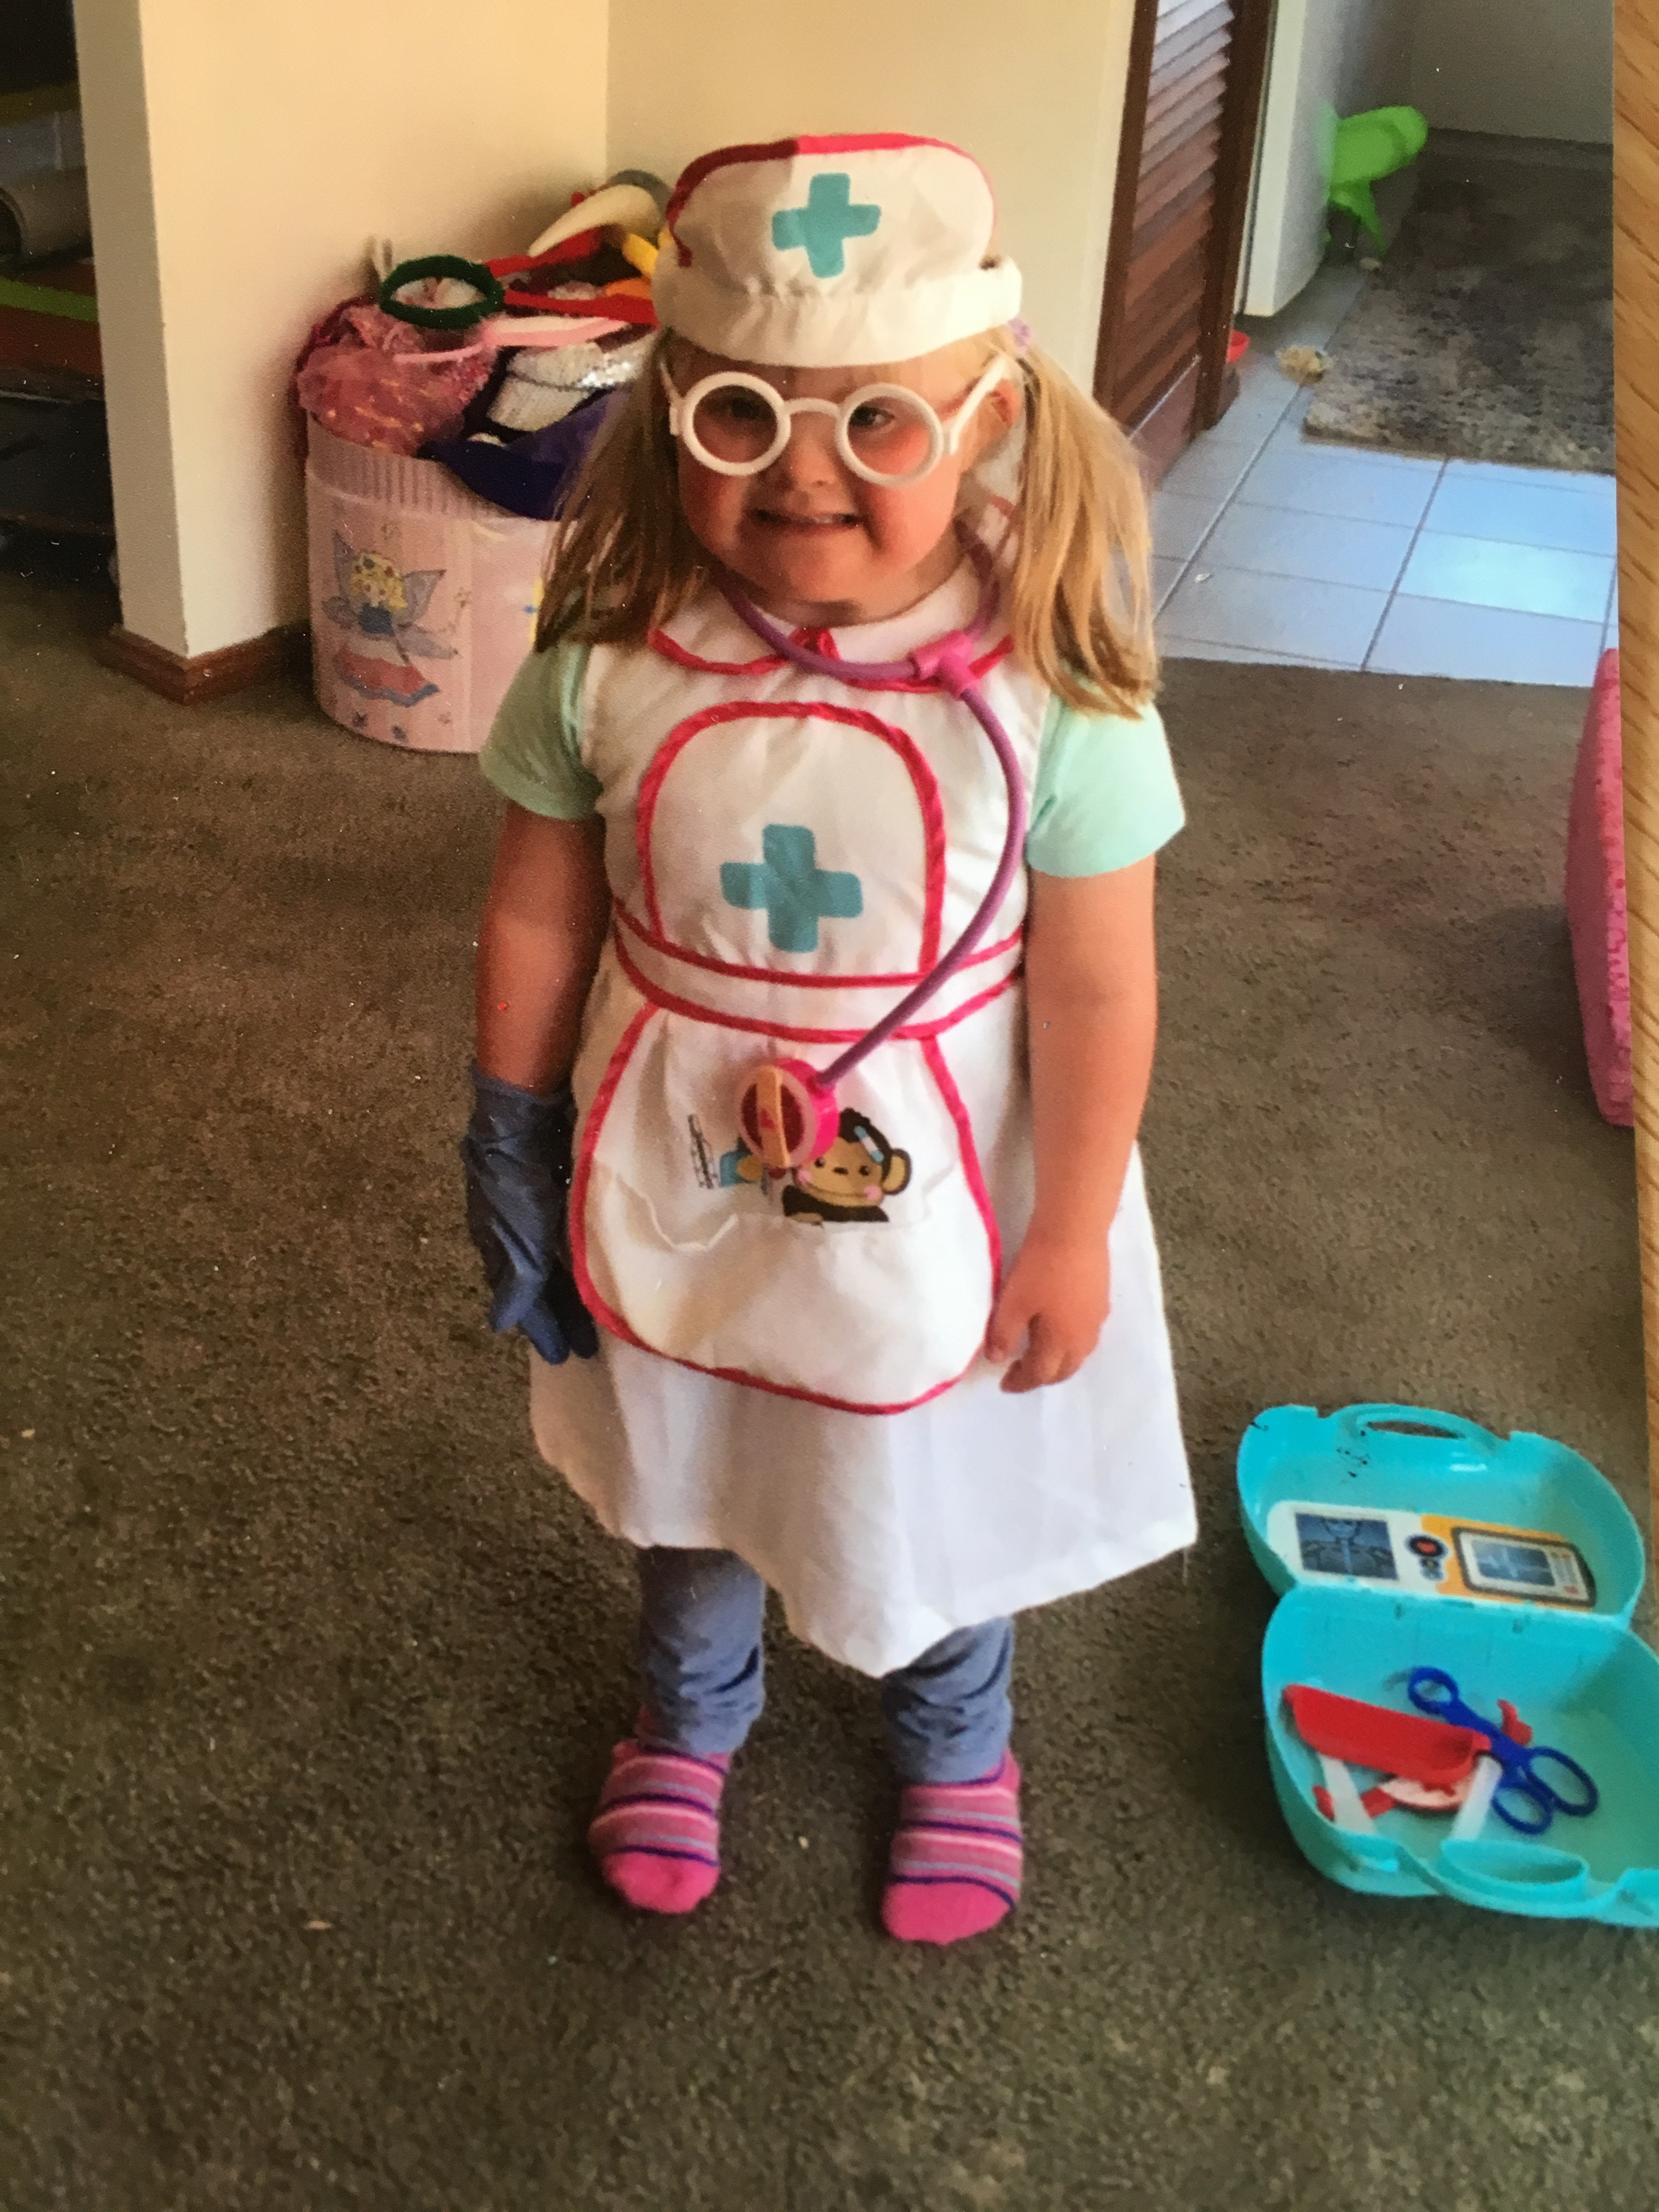 A small child is dressed as a nurse in a uniform with brightly coloured accessories